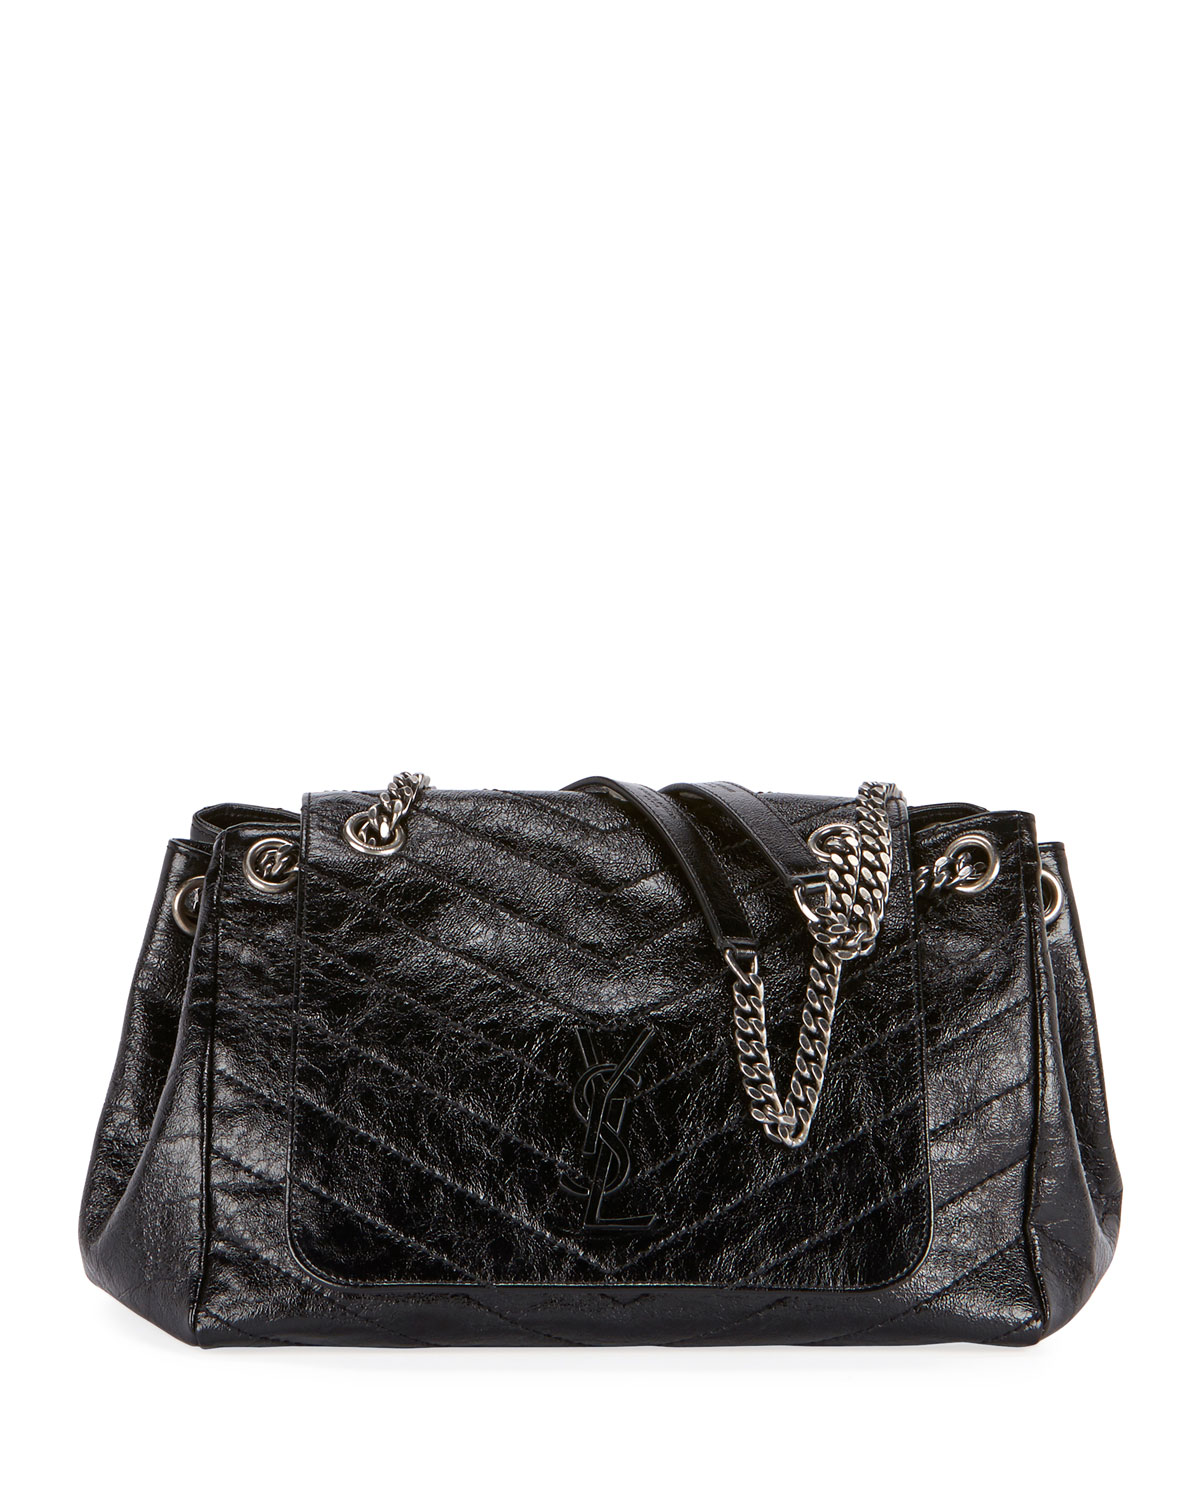 8284c5c4714 Saint Laurent Nolita Medium Monogram YSL Double Chain Shoulder Bag ...